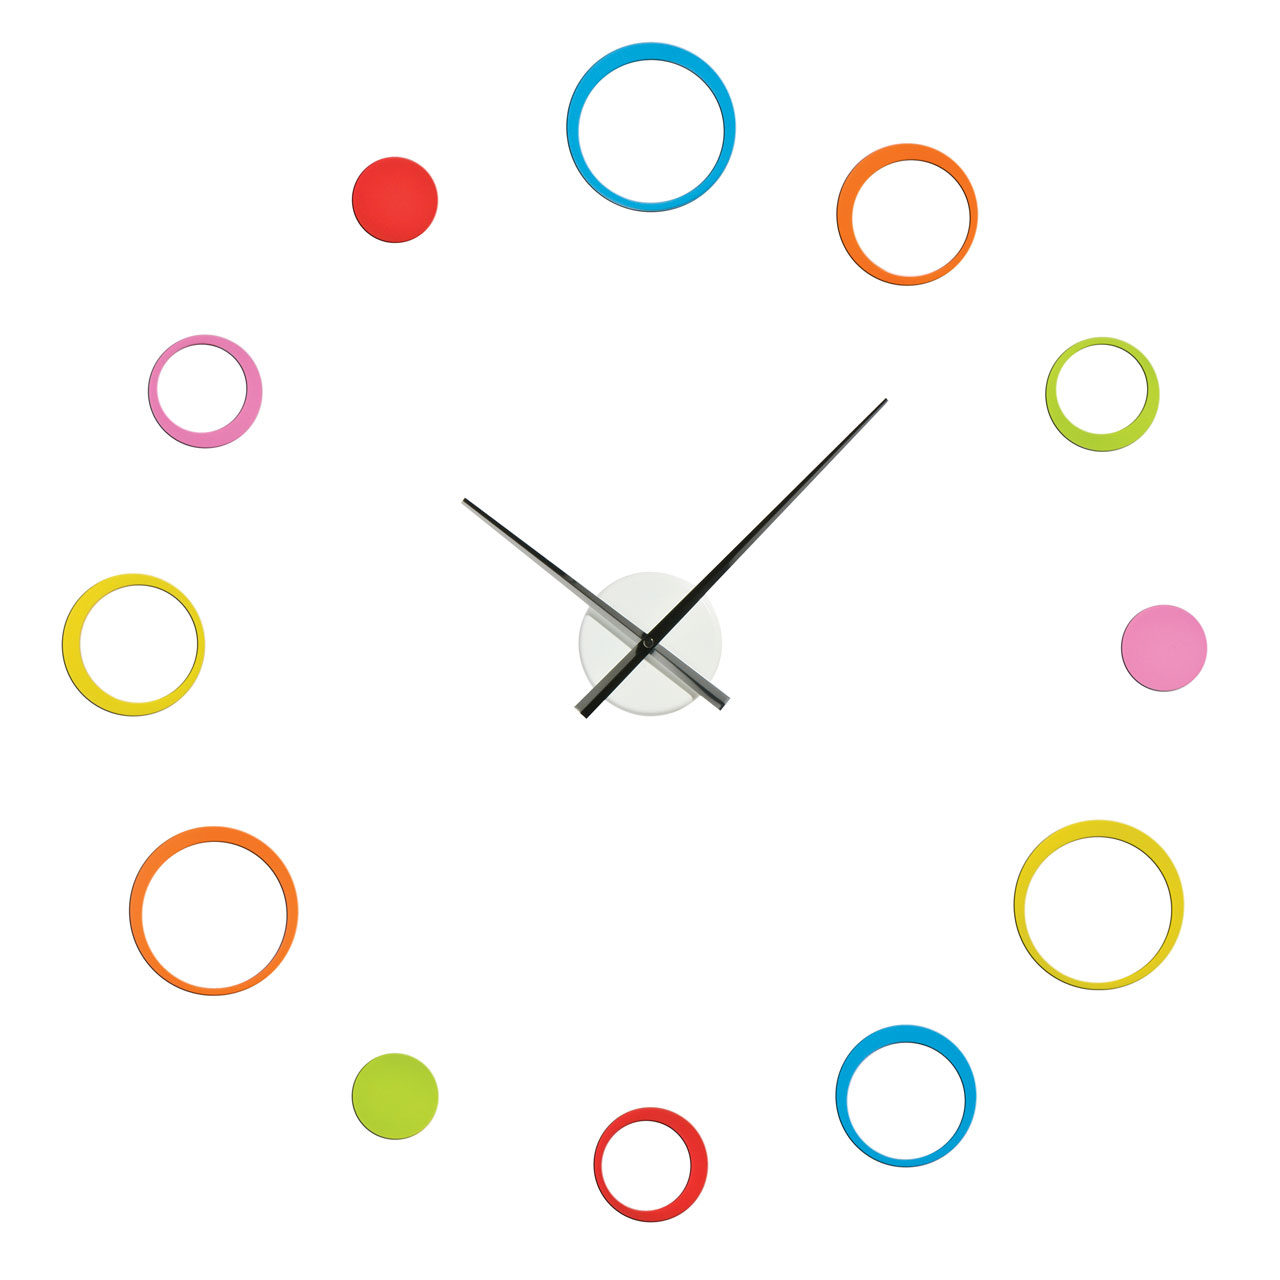 diy wall clock with  multicoloured circles customisable layout  - diy wall clock with  multicoloured circles customisable layout selfadhesive